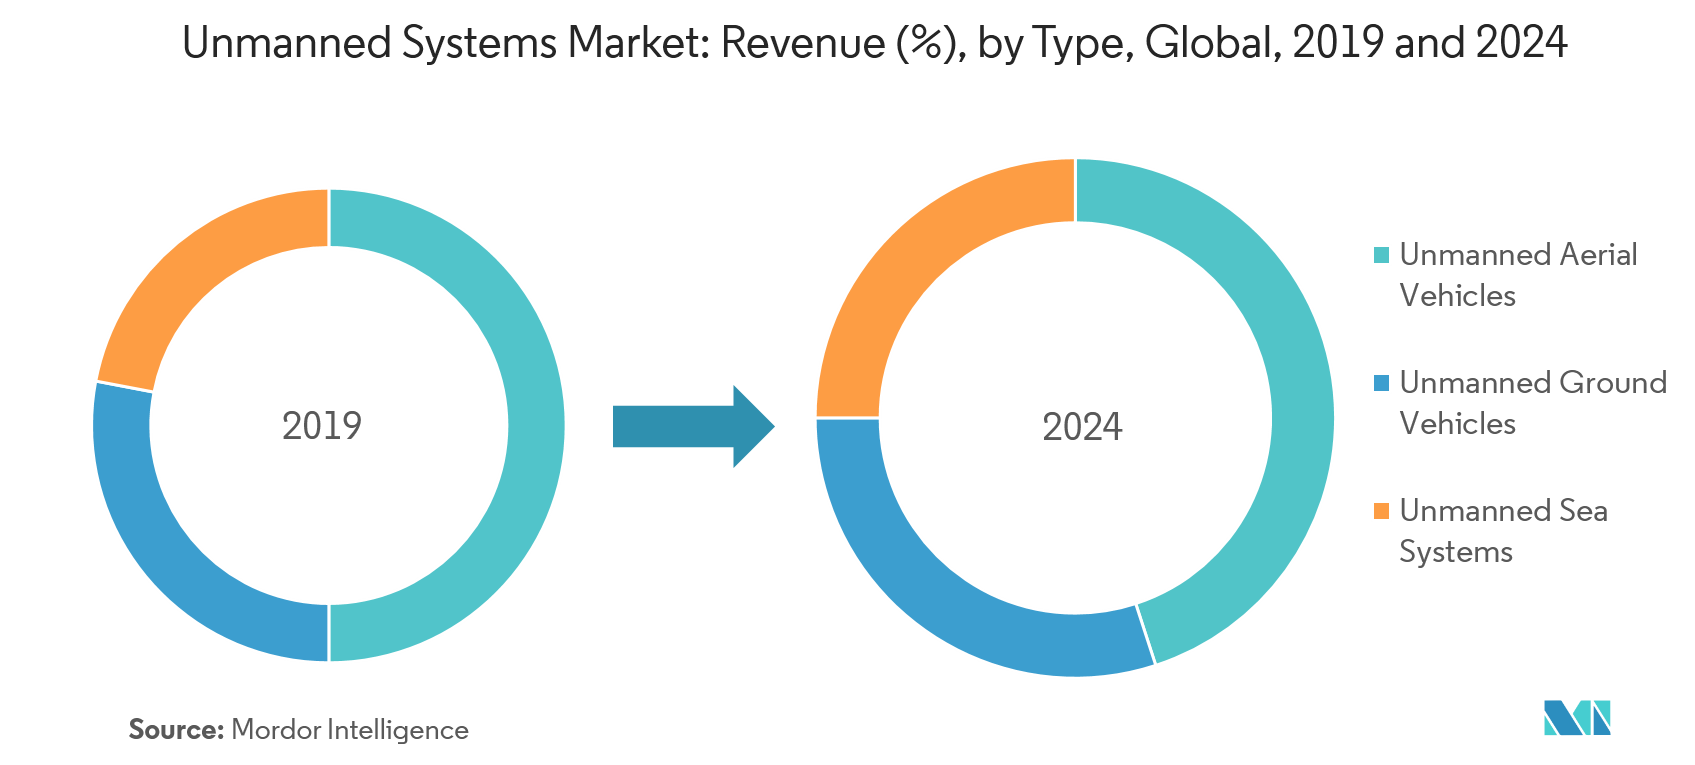 Unmanned Systems Market Segmentation